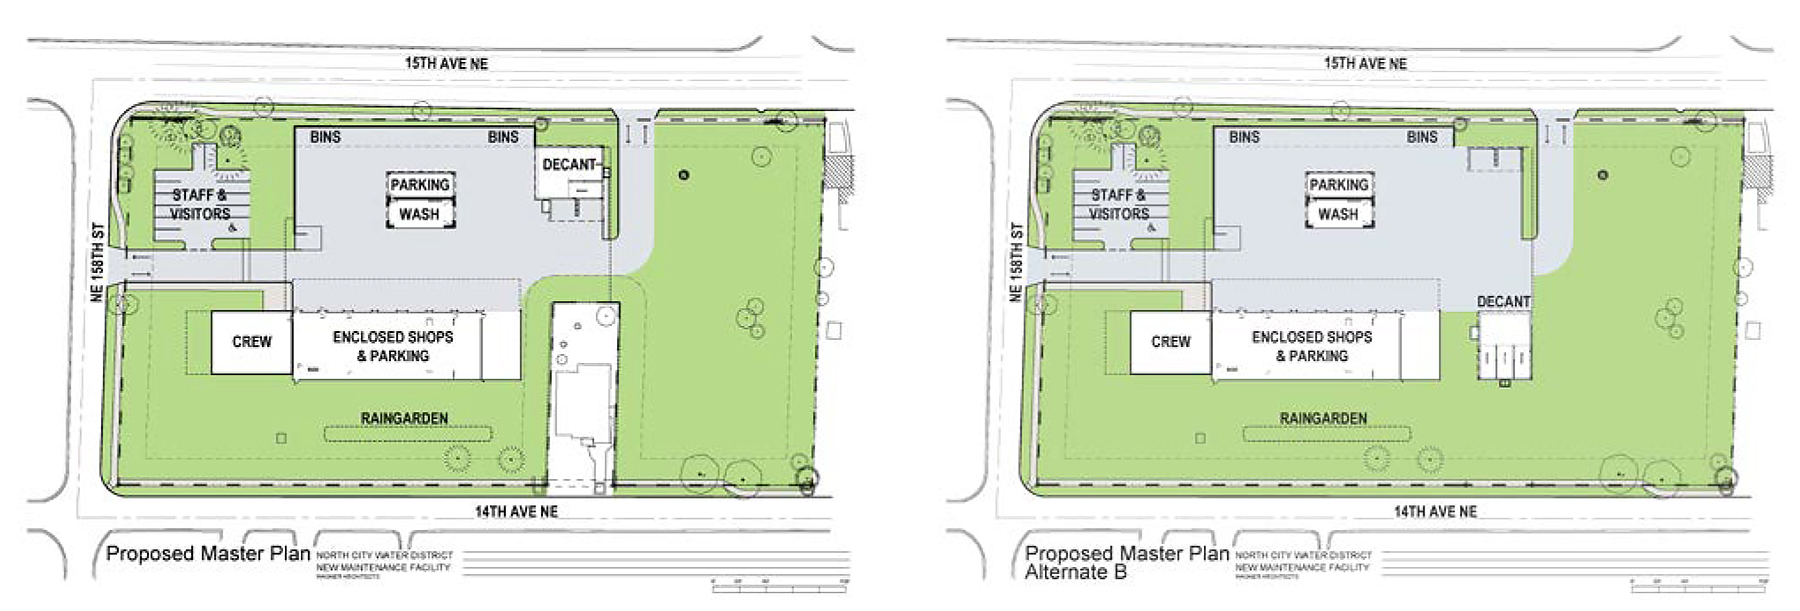 Site Plan for New Maintenance Facility